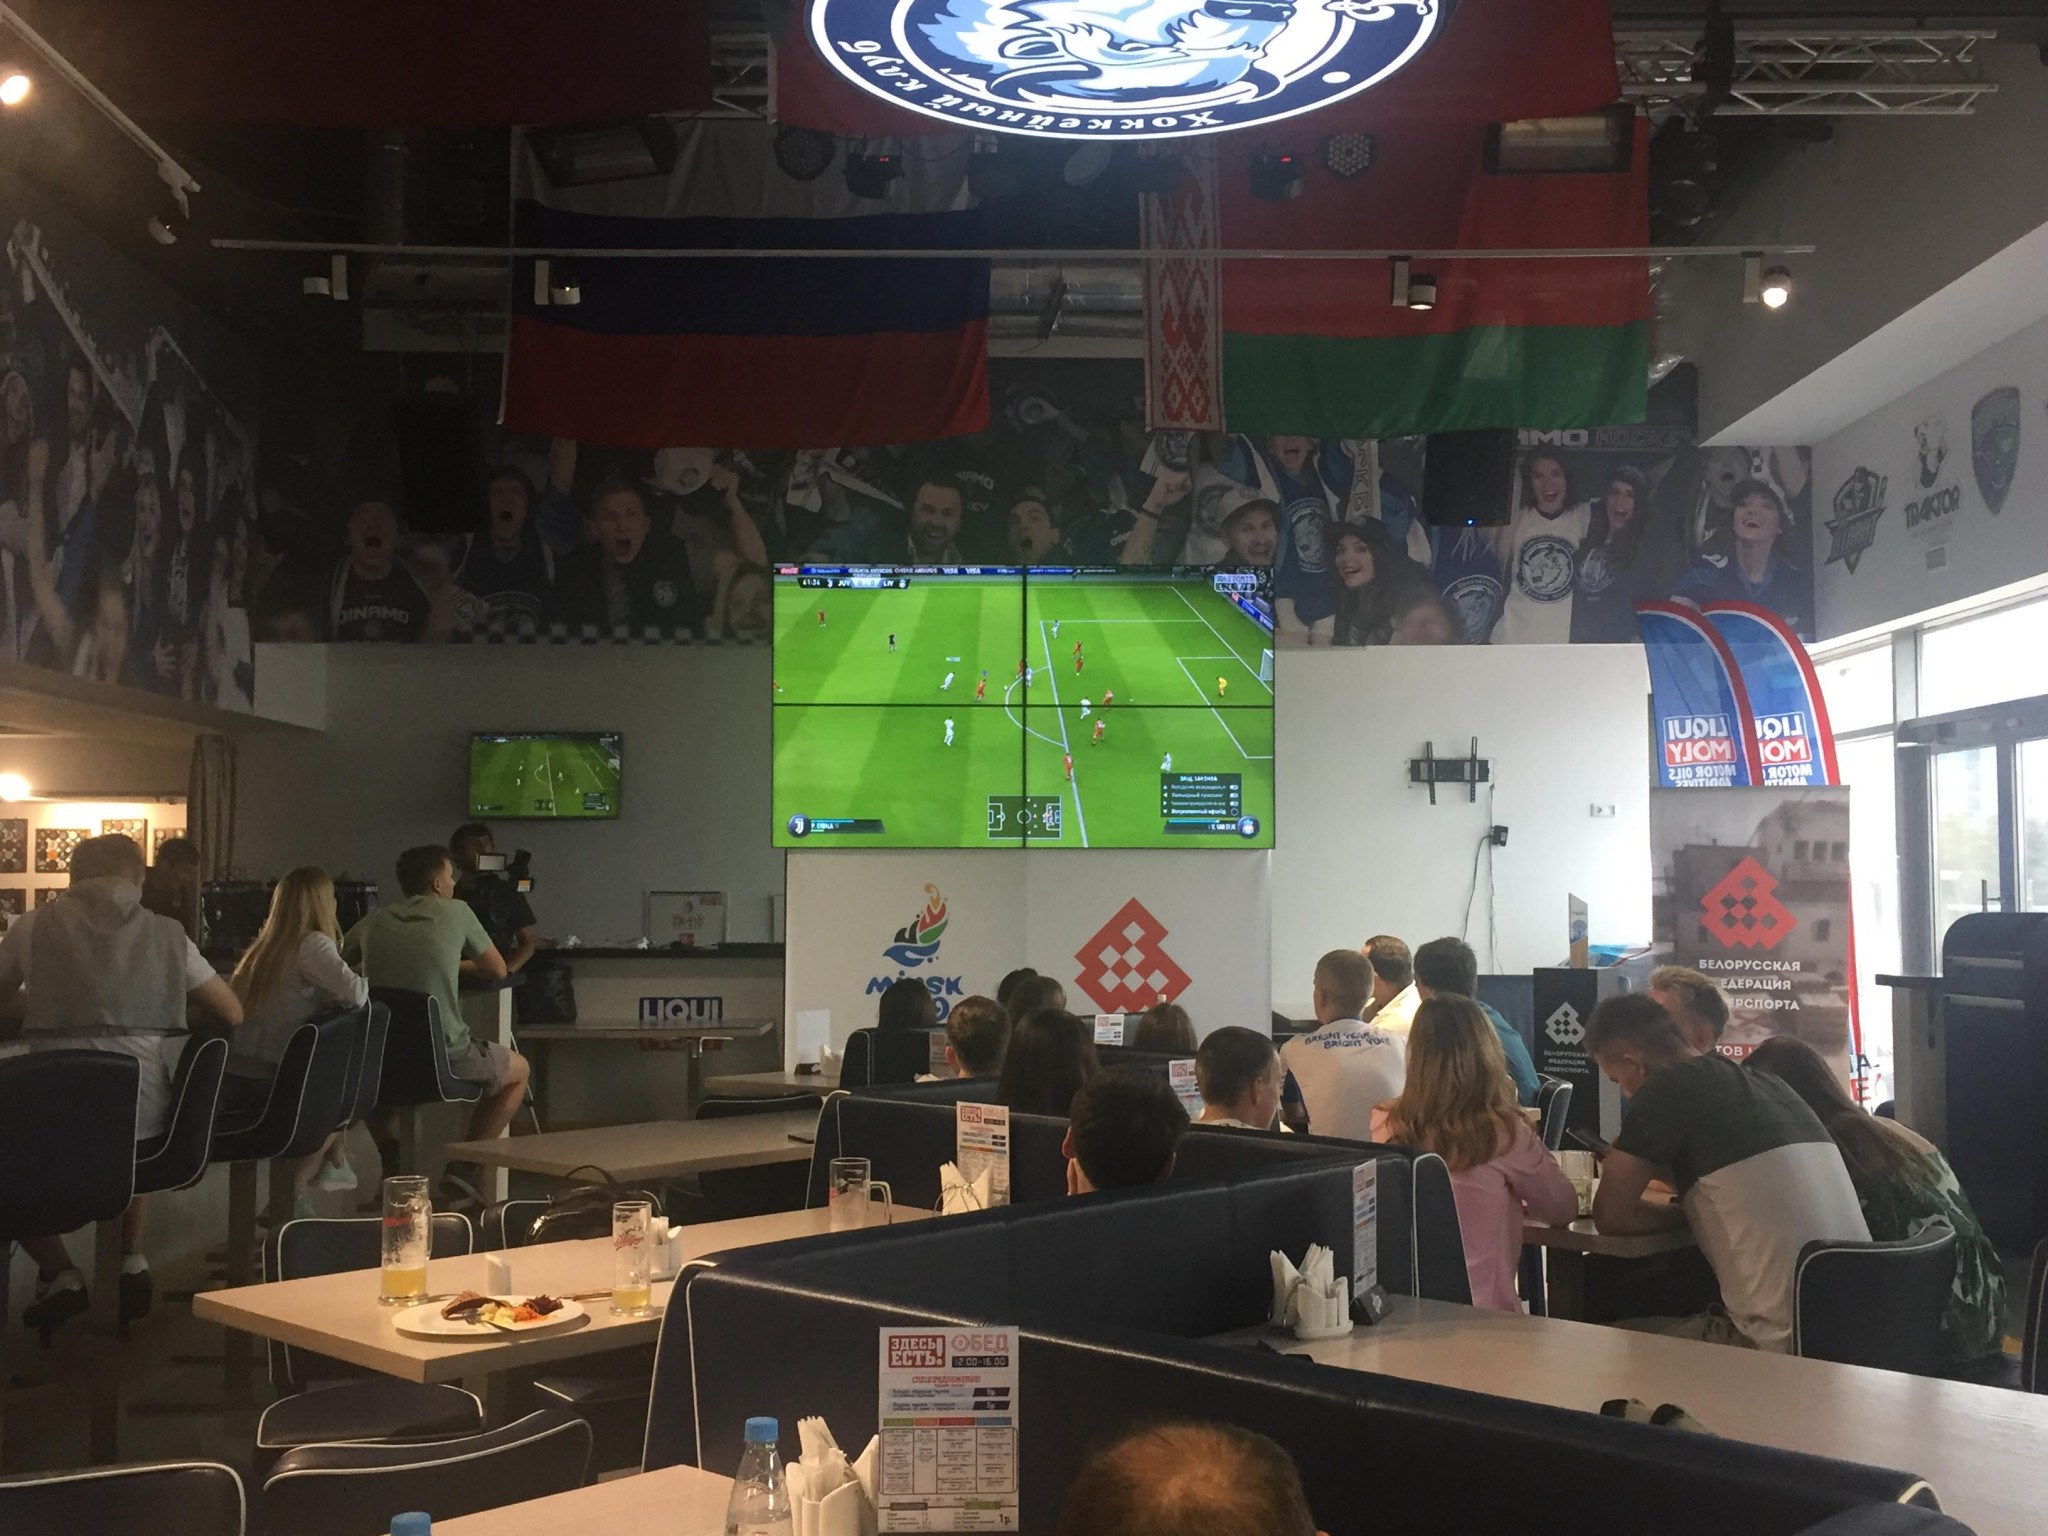 A FIFA 19 tournament was hosted at Dinamo Minsk Fan House as part of the Minsk 2019 European Games cultural programme ©ITG